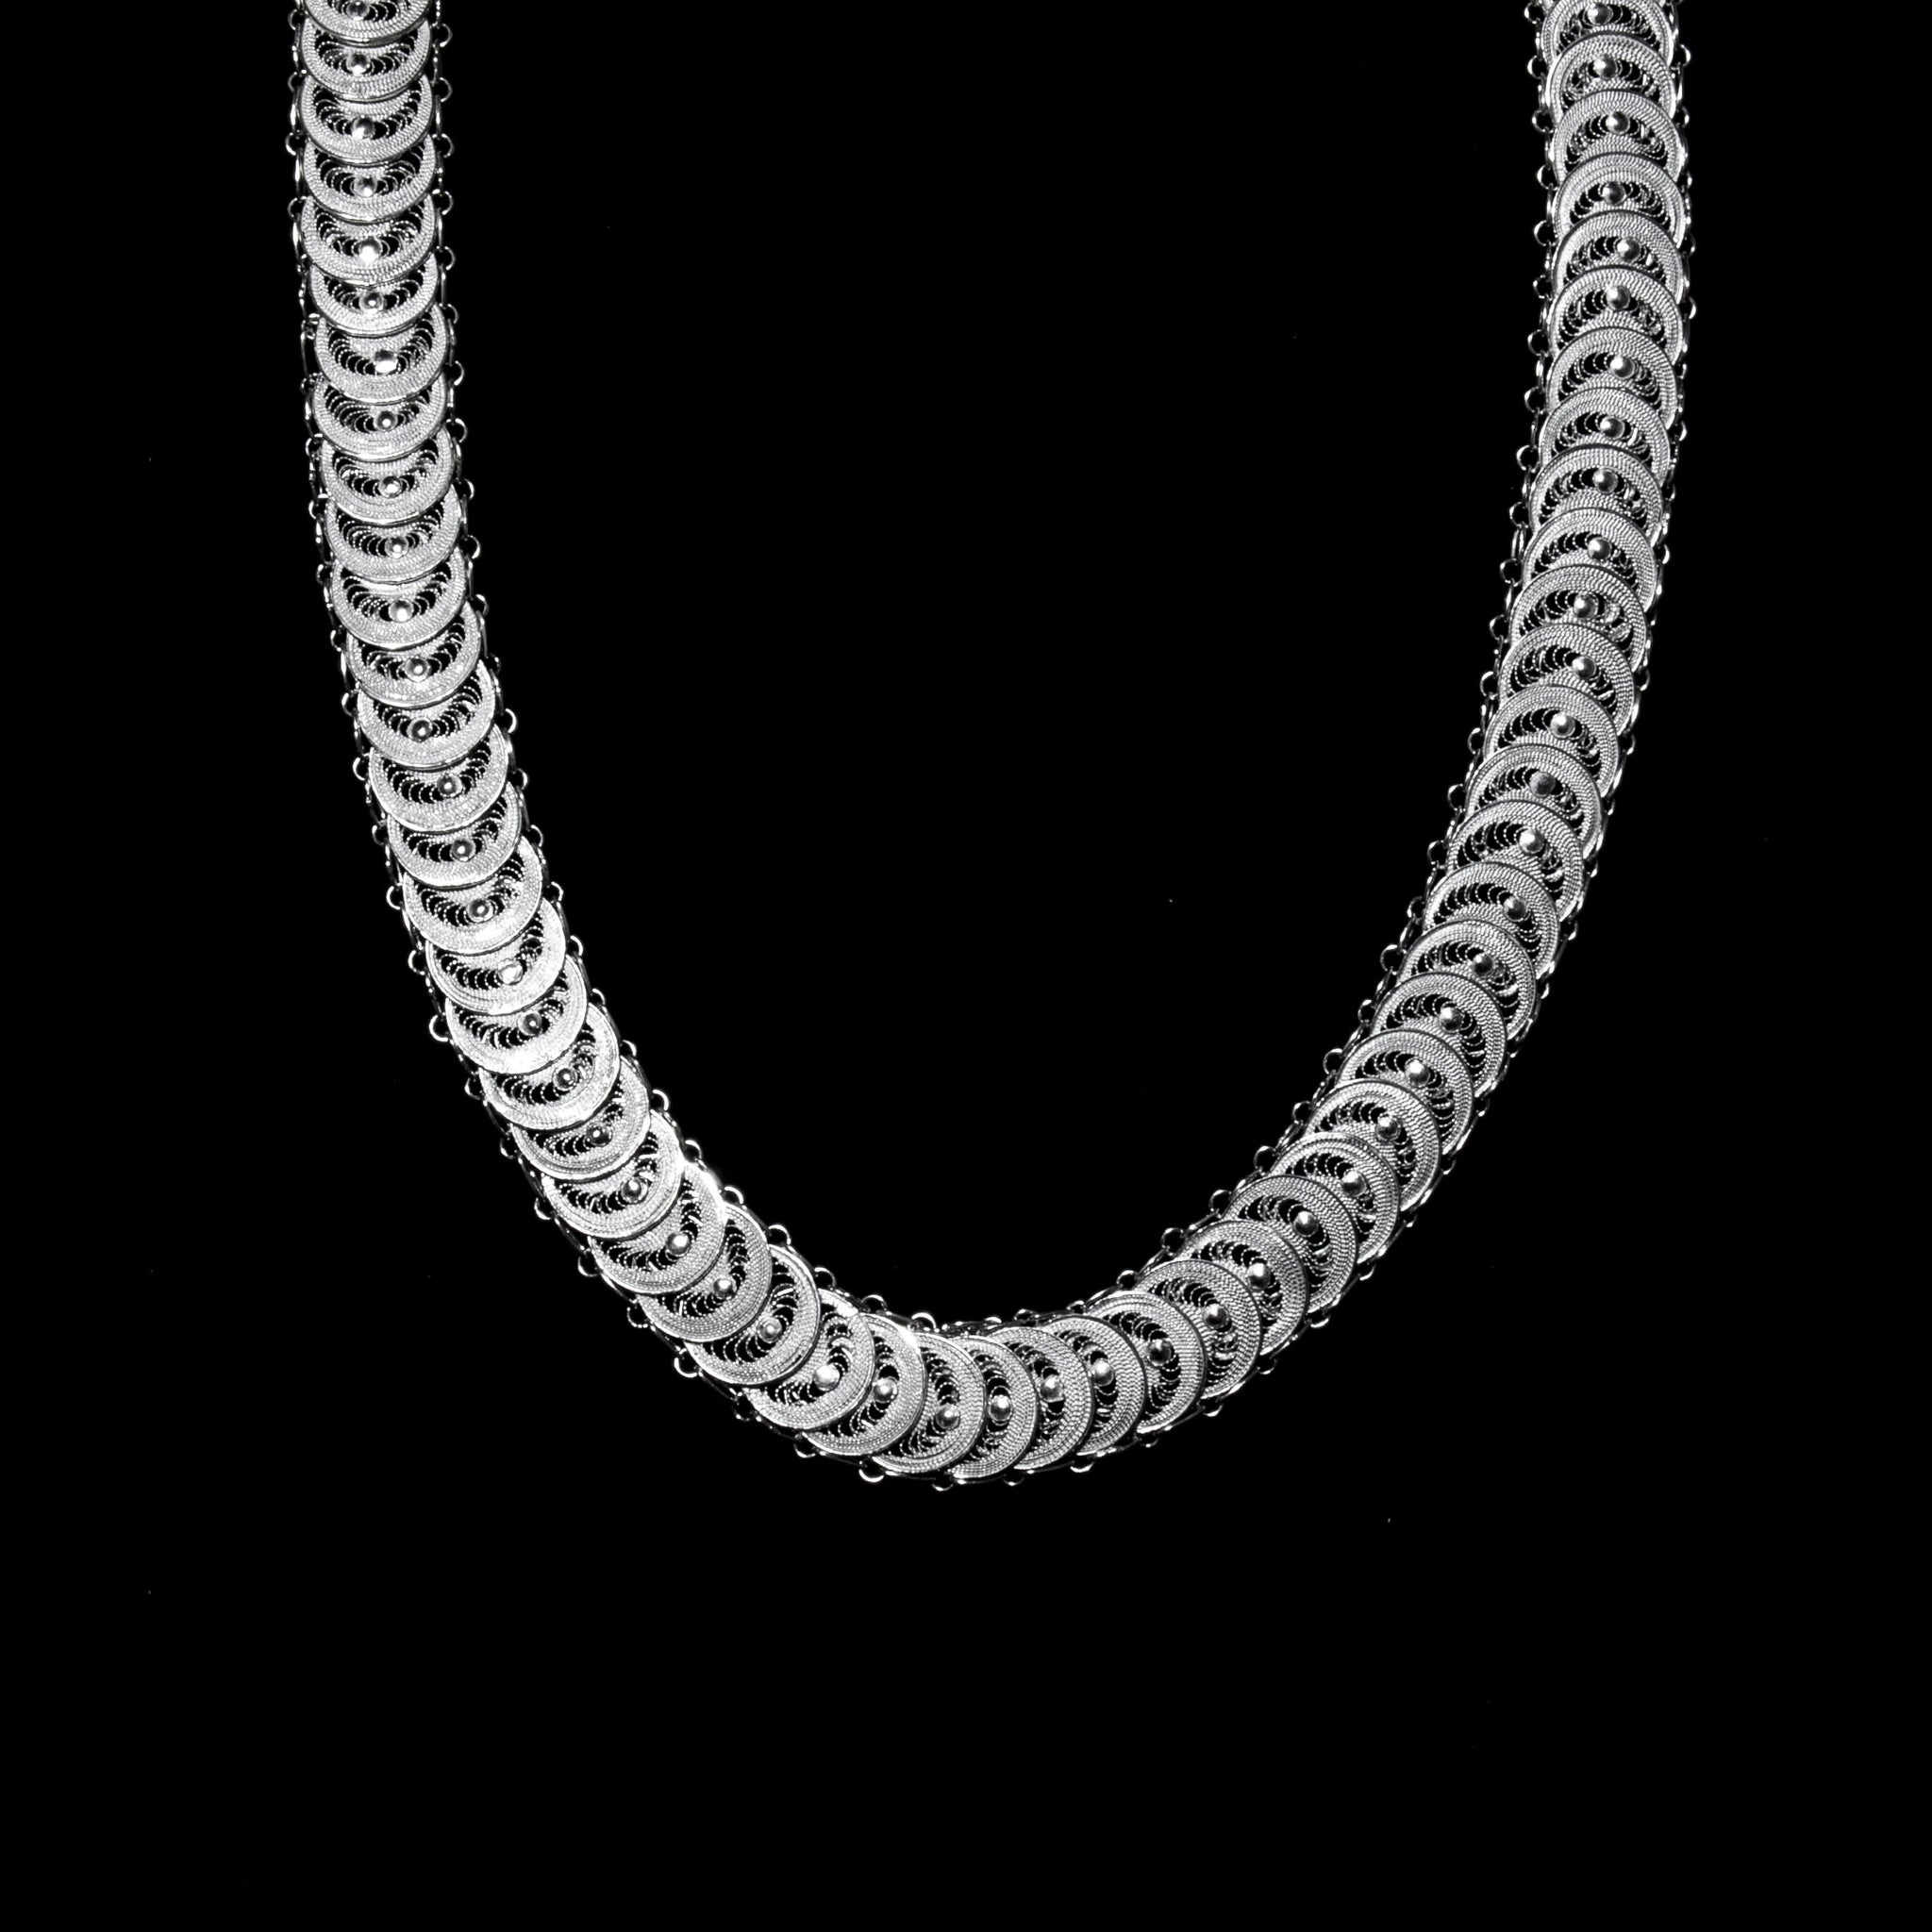 "Handmade Necklace ""Infinity"" - Necklace -  Lefkara Silver Jewellery  - Handmade silver filigree jewelry made in Cyprus"